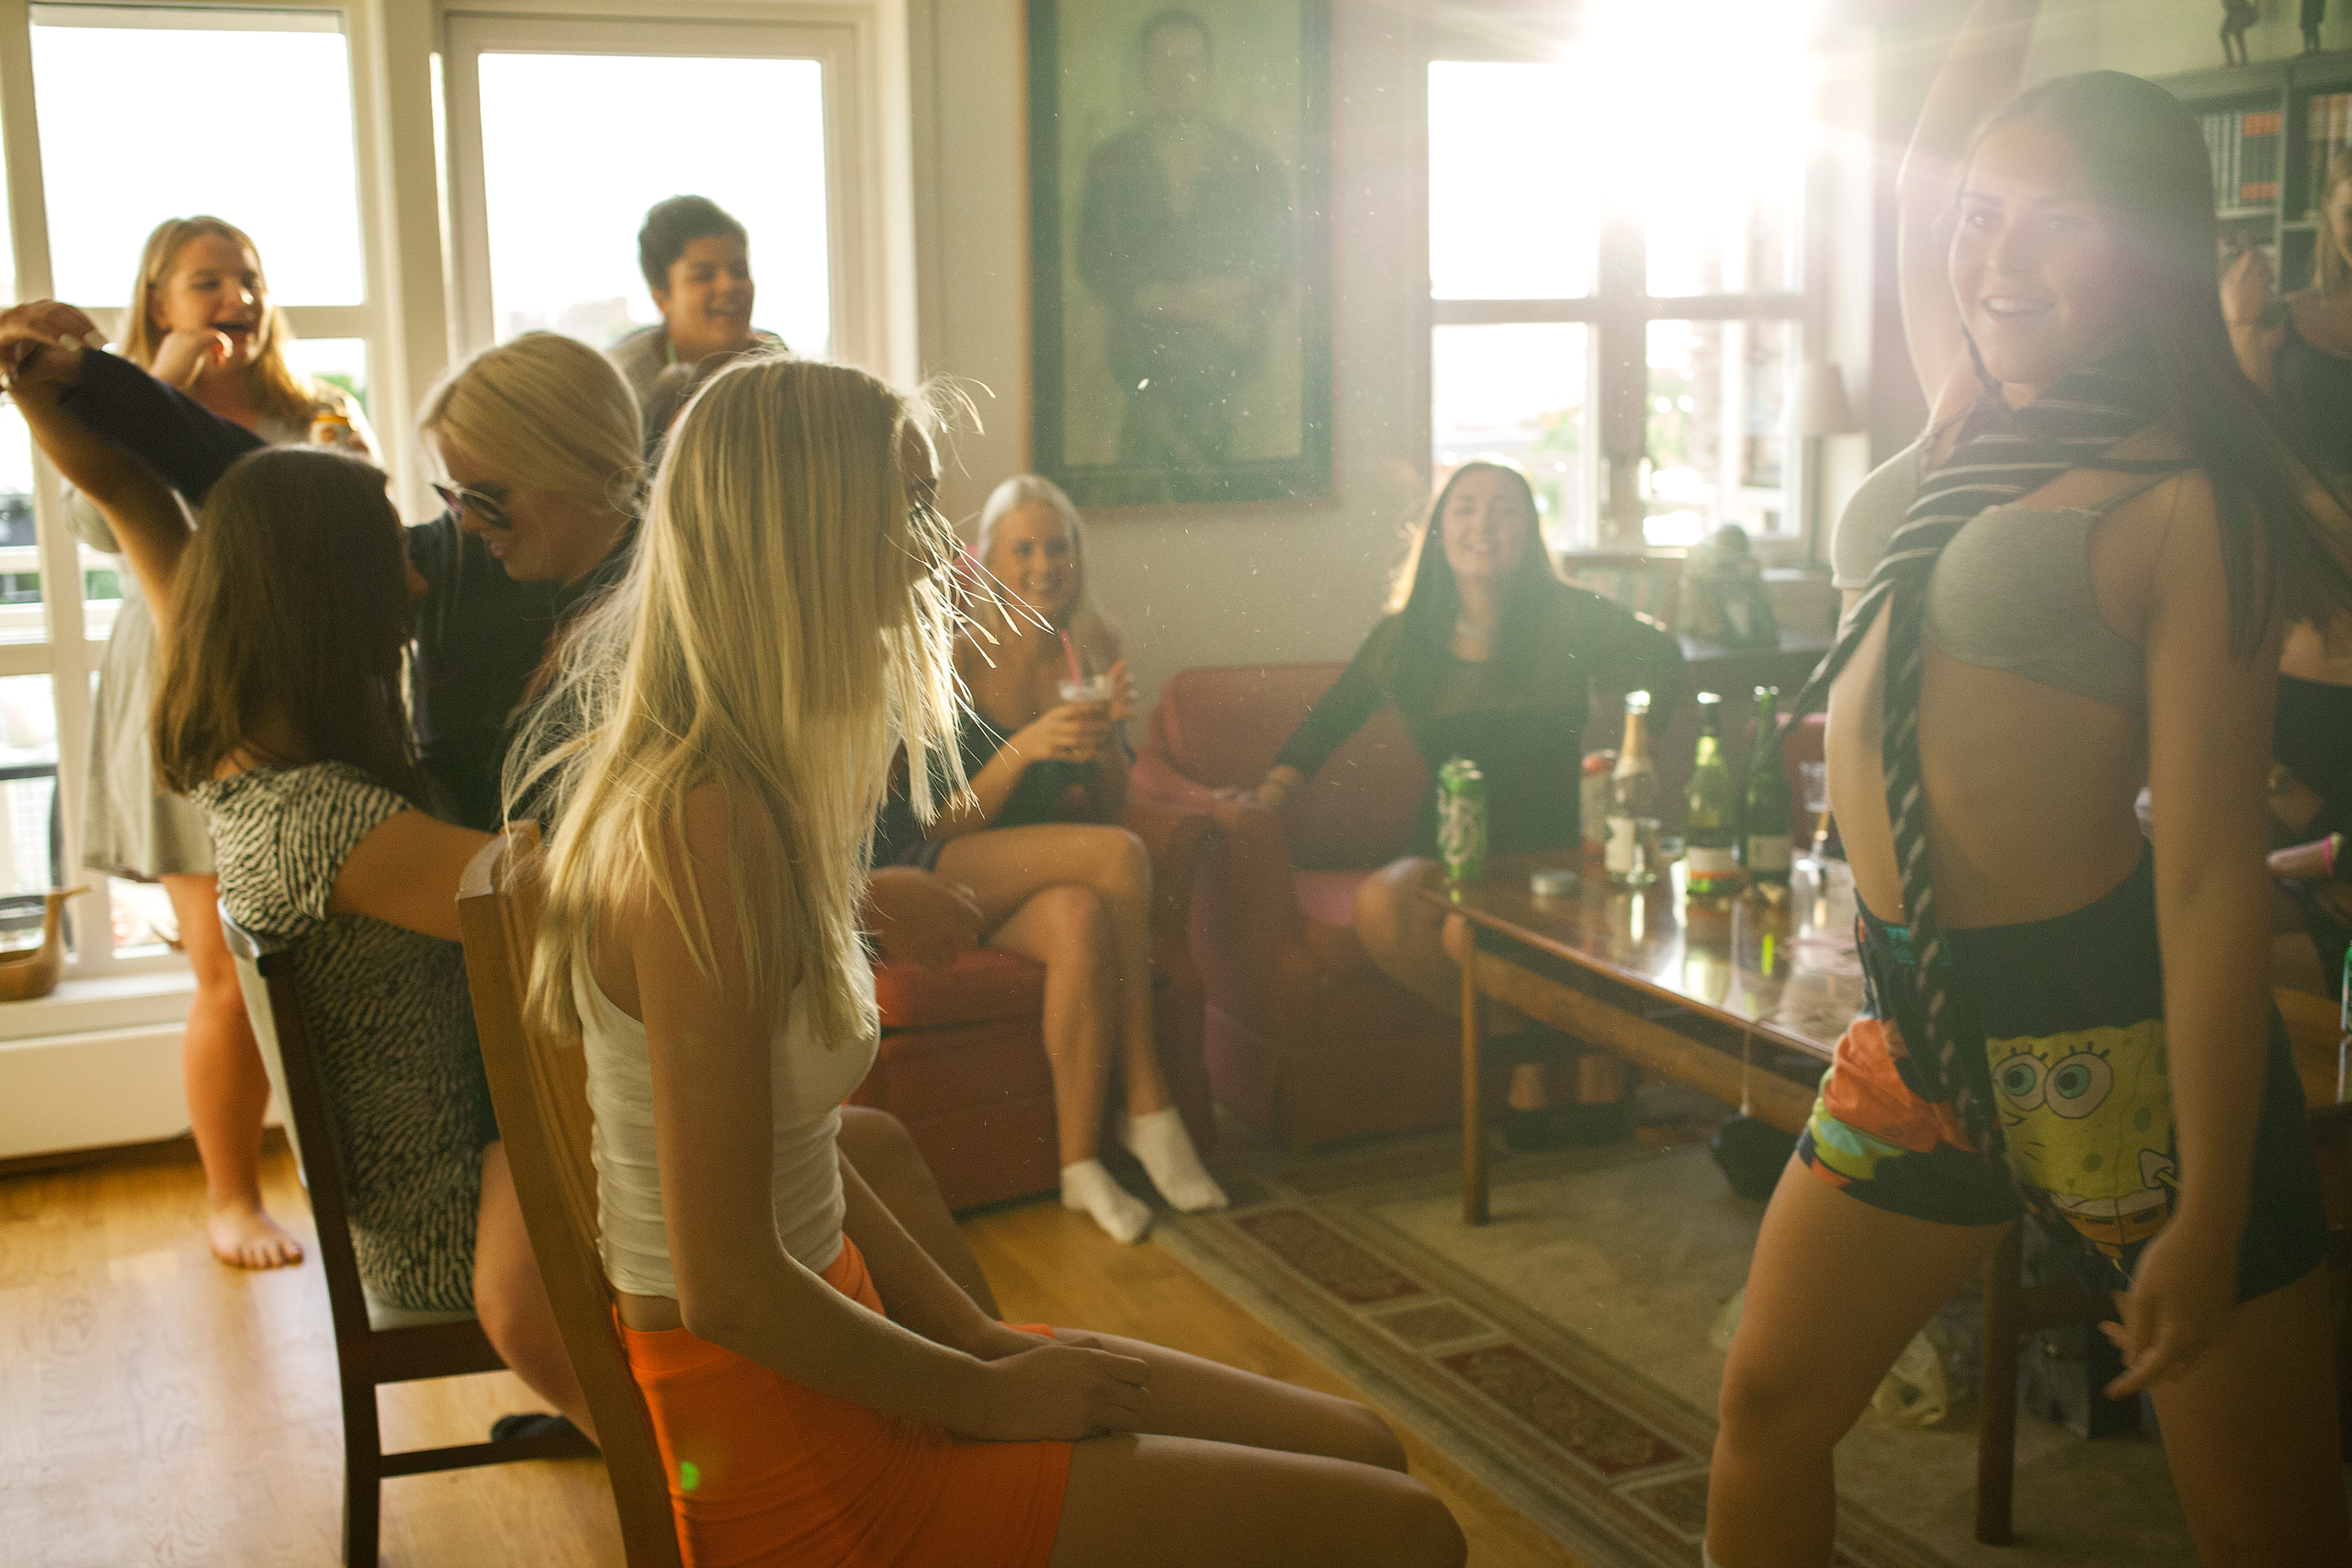 Ingrid and Ragnhild celebrating their 18th birthdays. Dressed in Ragnhild's brother's clothes, Selma and Mia dedicate a strip show to the two birthday girls.